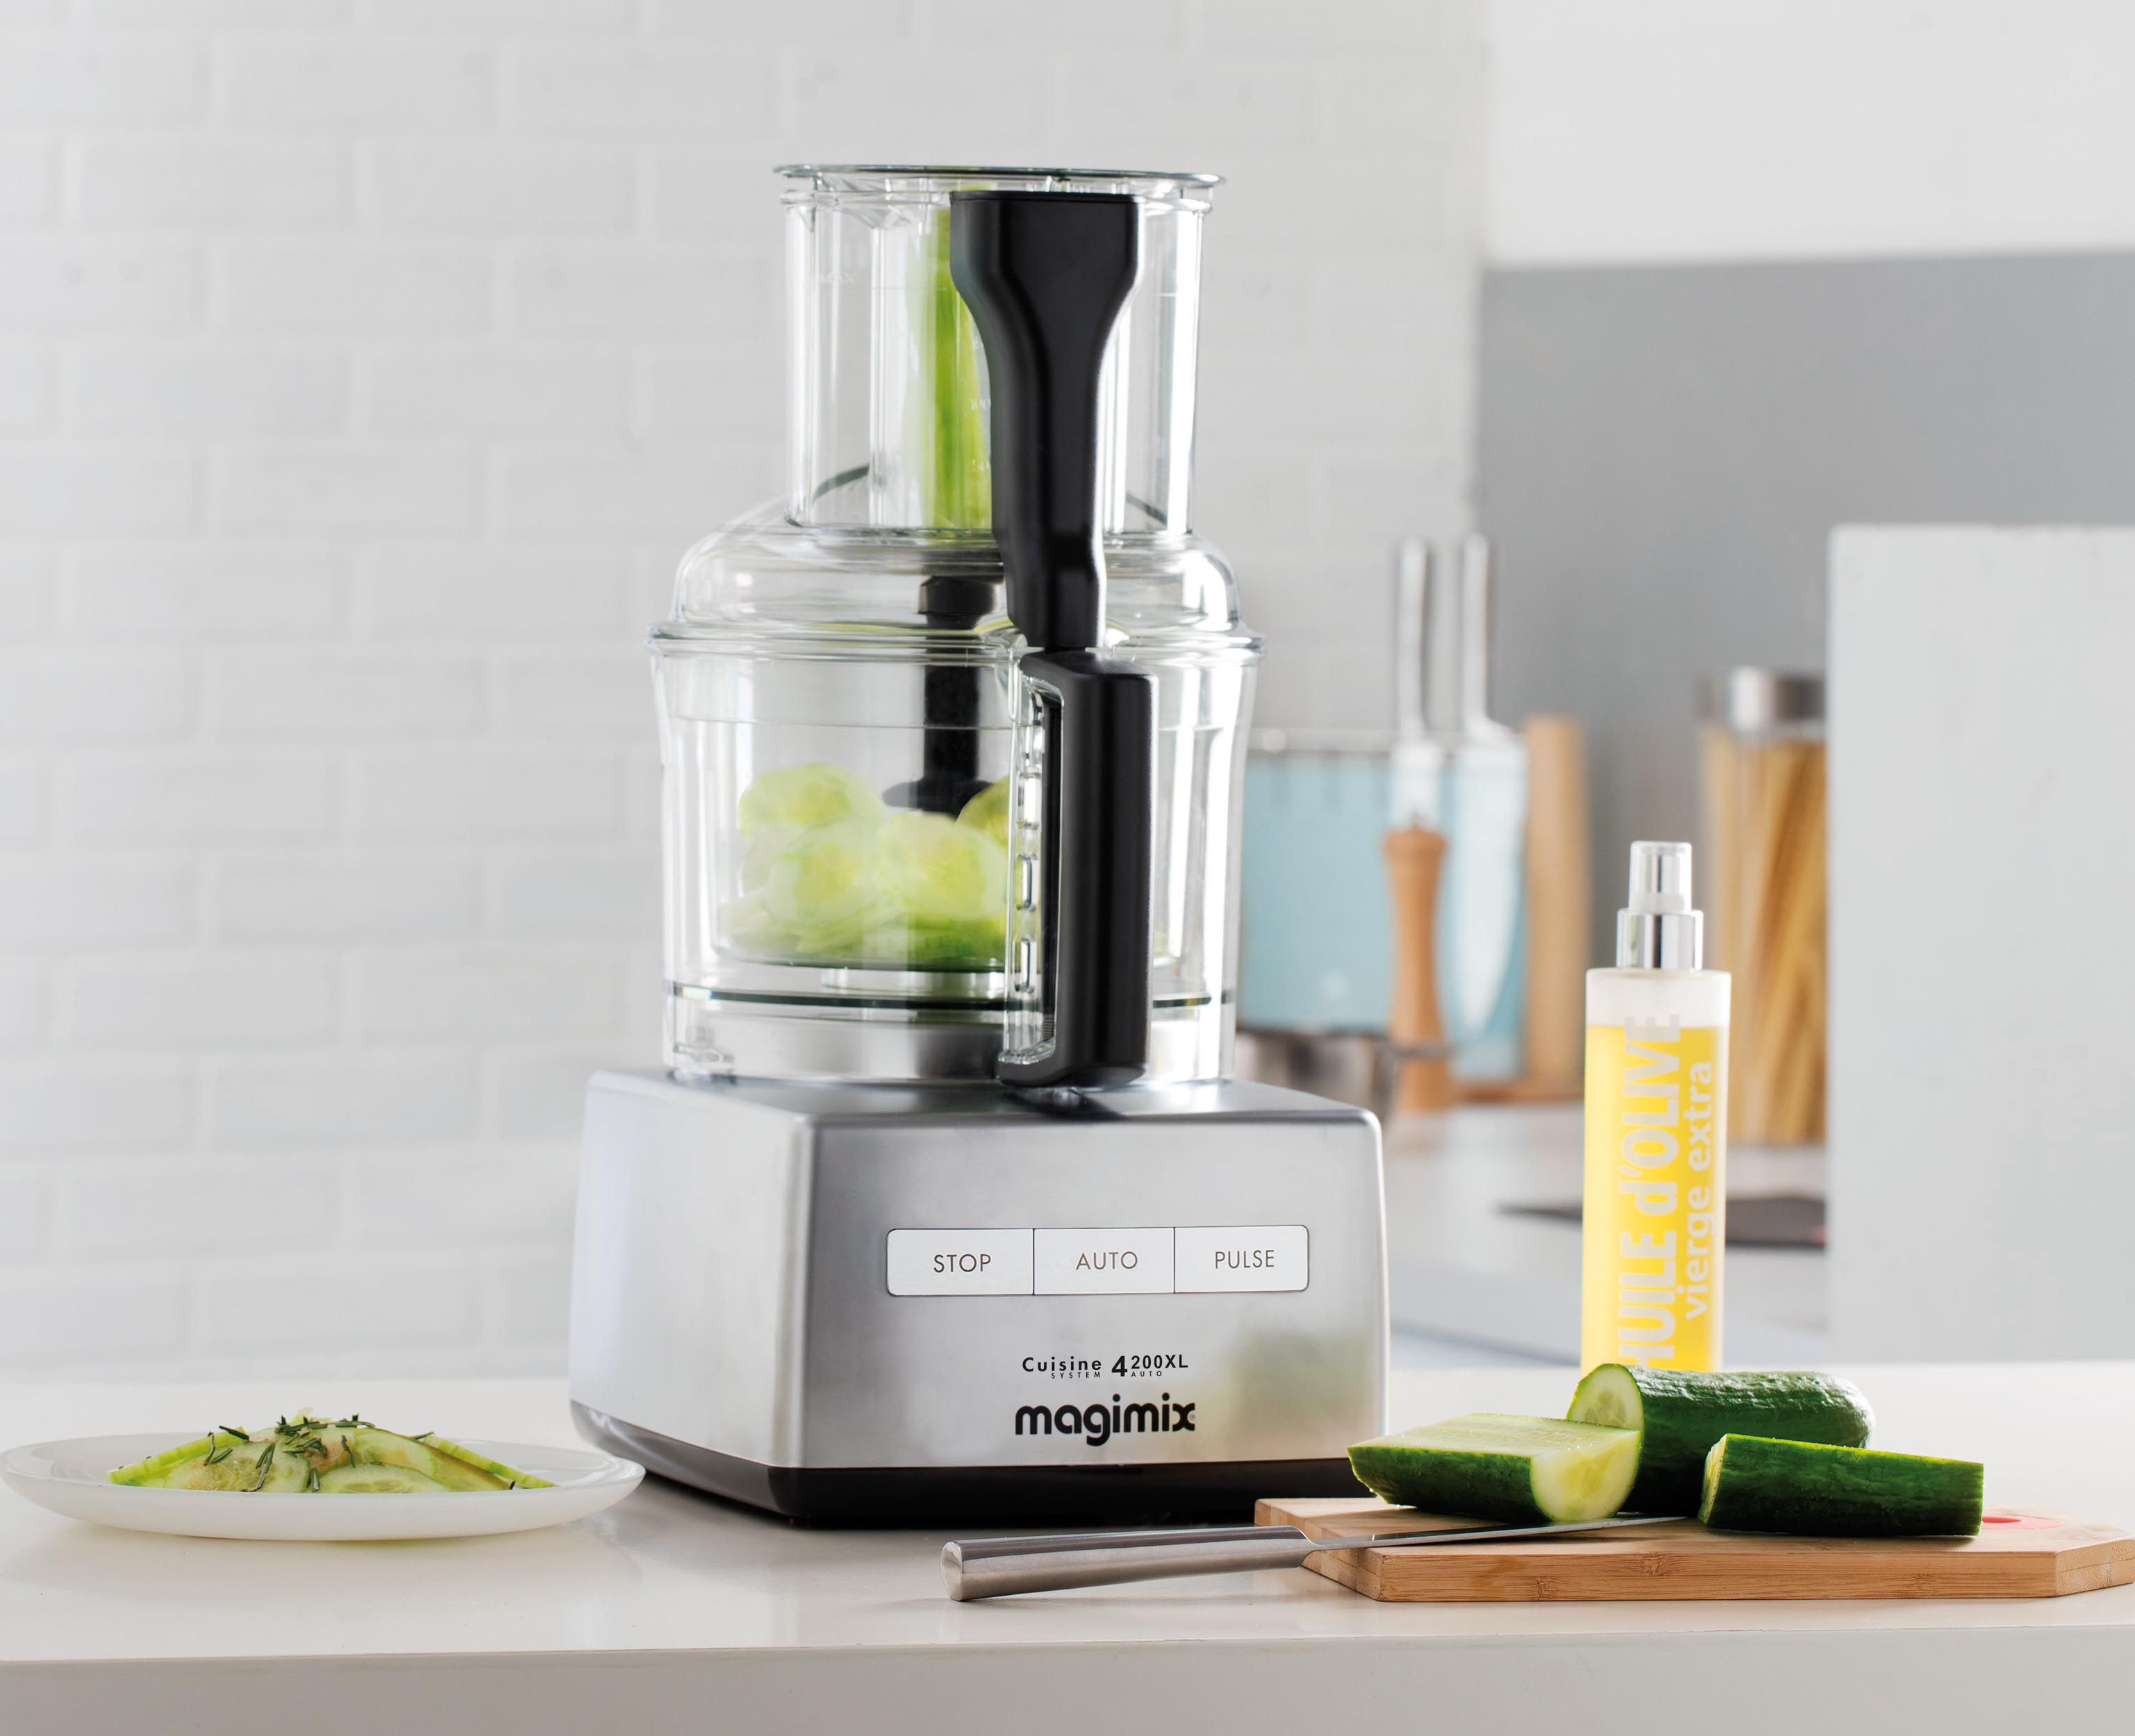 Magimix 4100 food processor